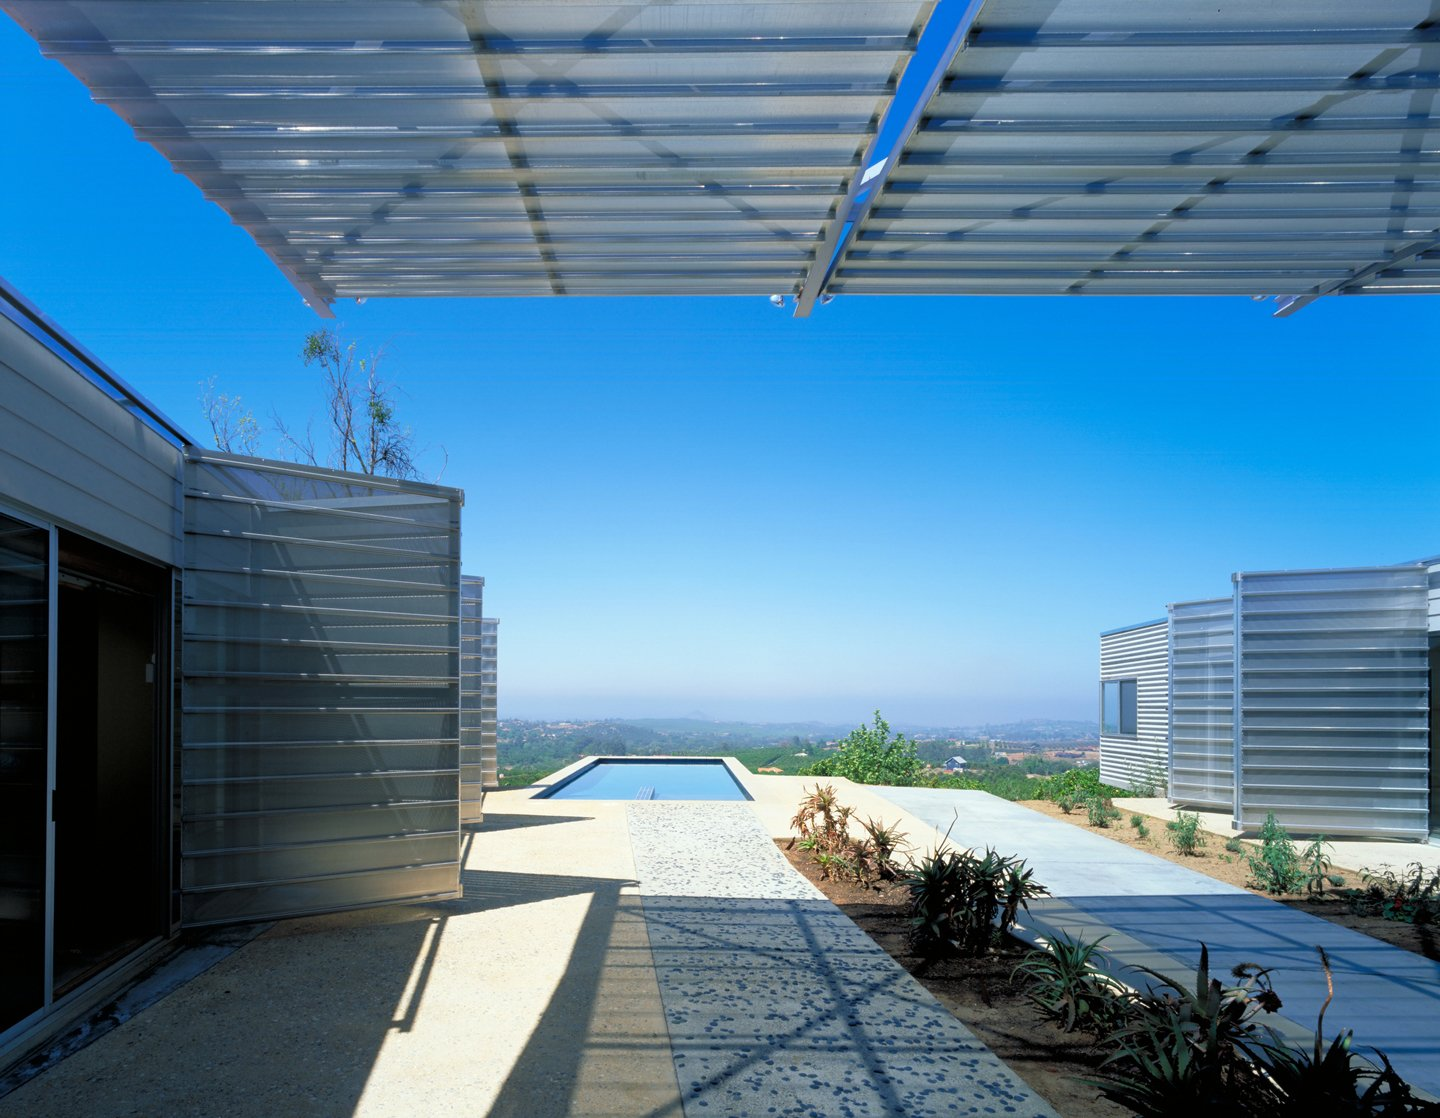 #exterior #outdoor #outside #pool #pooldesign #desert #view #eco #green #sustainable #ValleyCenter #California #KevinDalyArchitects  Valley Center House by Kevin Daly Architects